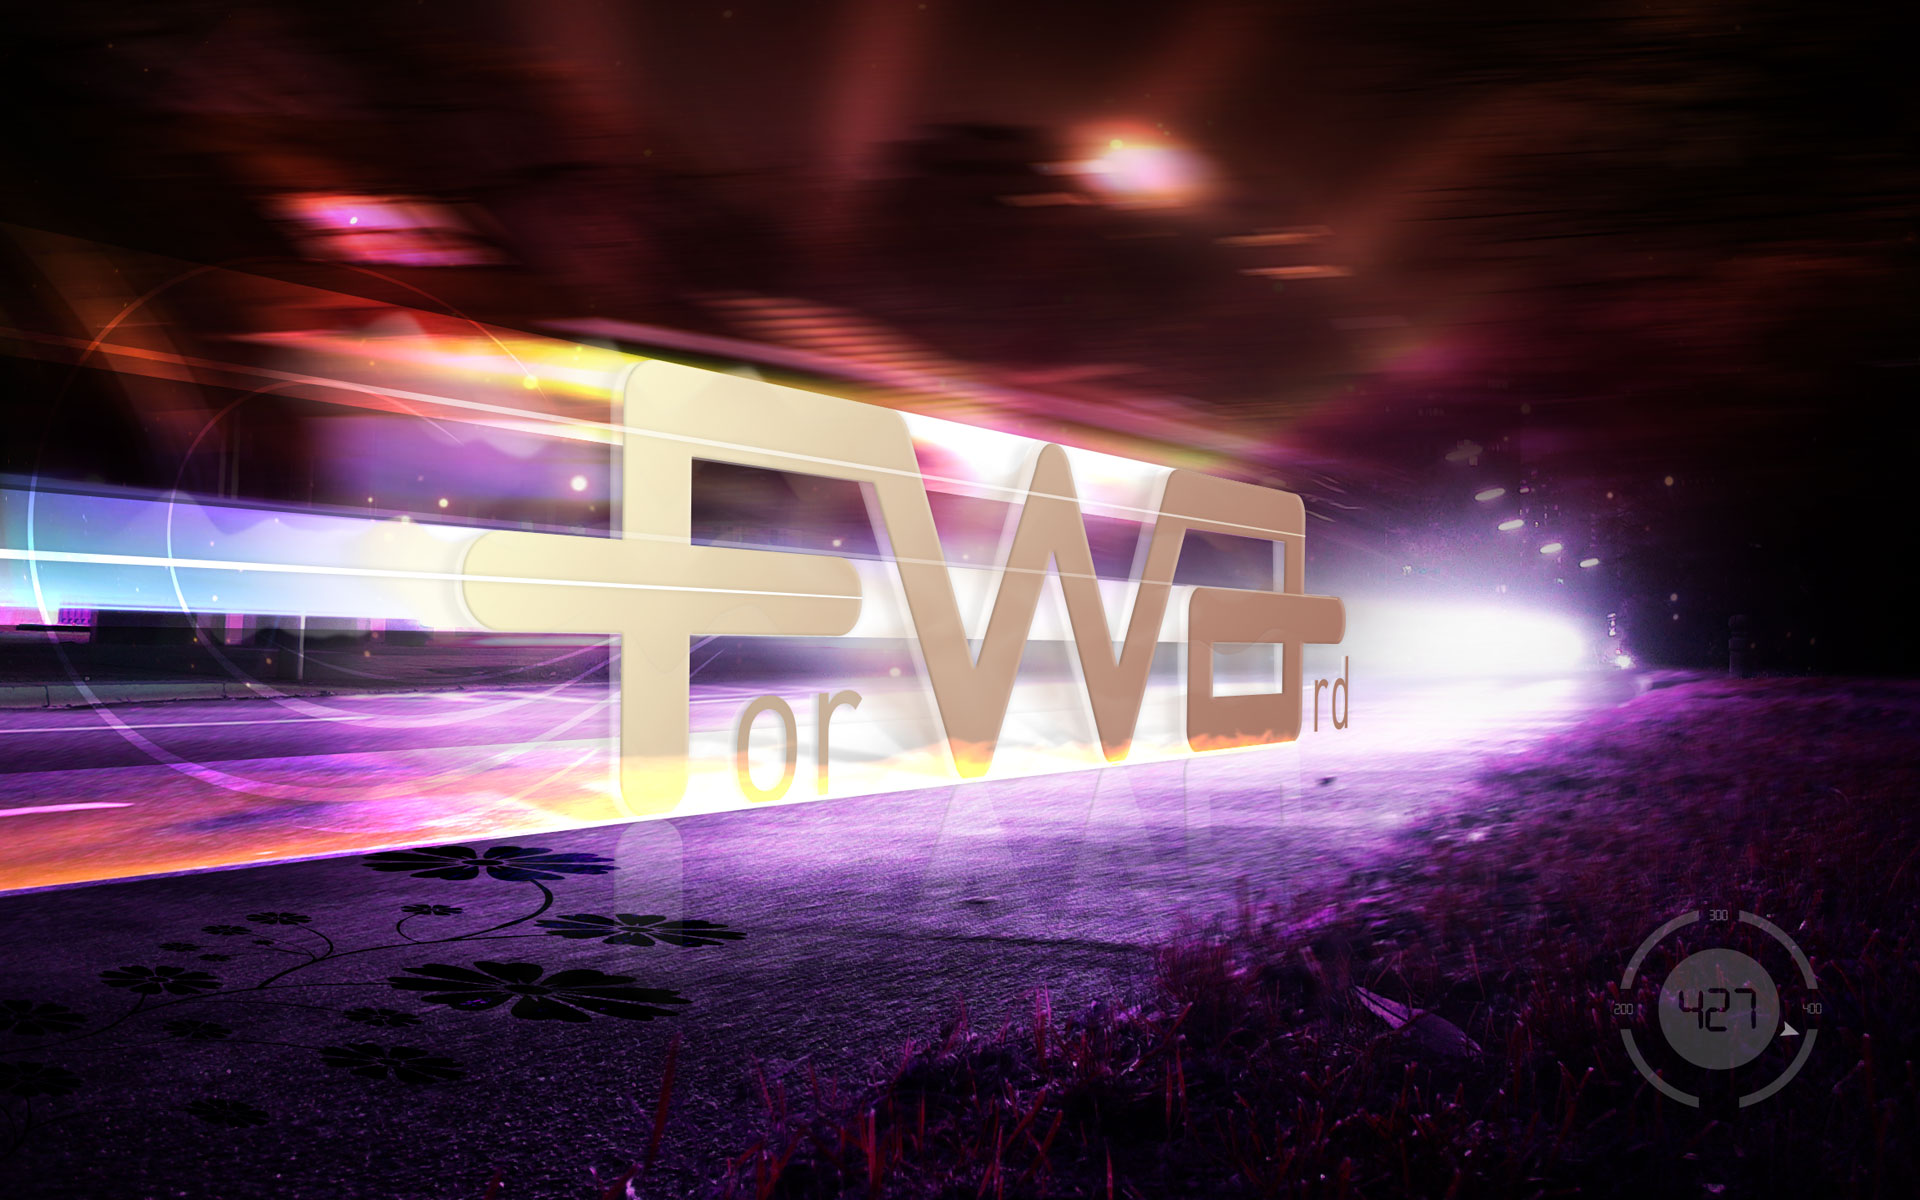 FWA Wallpaper Widescreen 20403